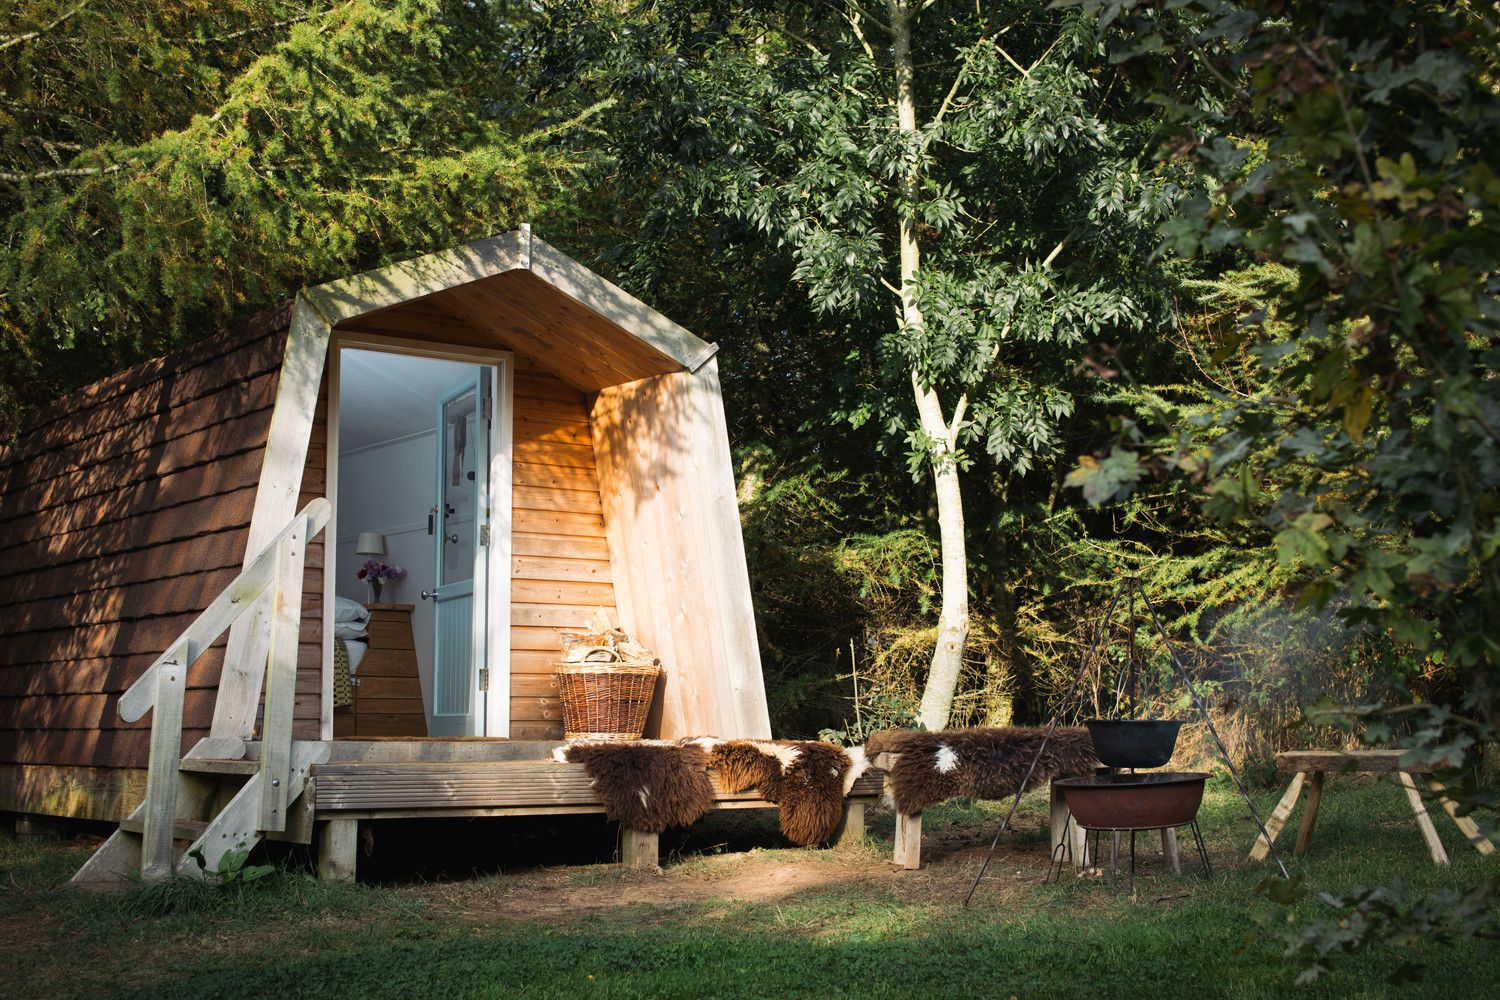 Romantically cosy camping cabins on Pembrokeshire's 'Secret Waterway'.